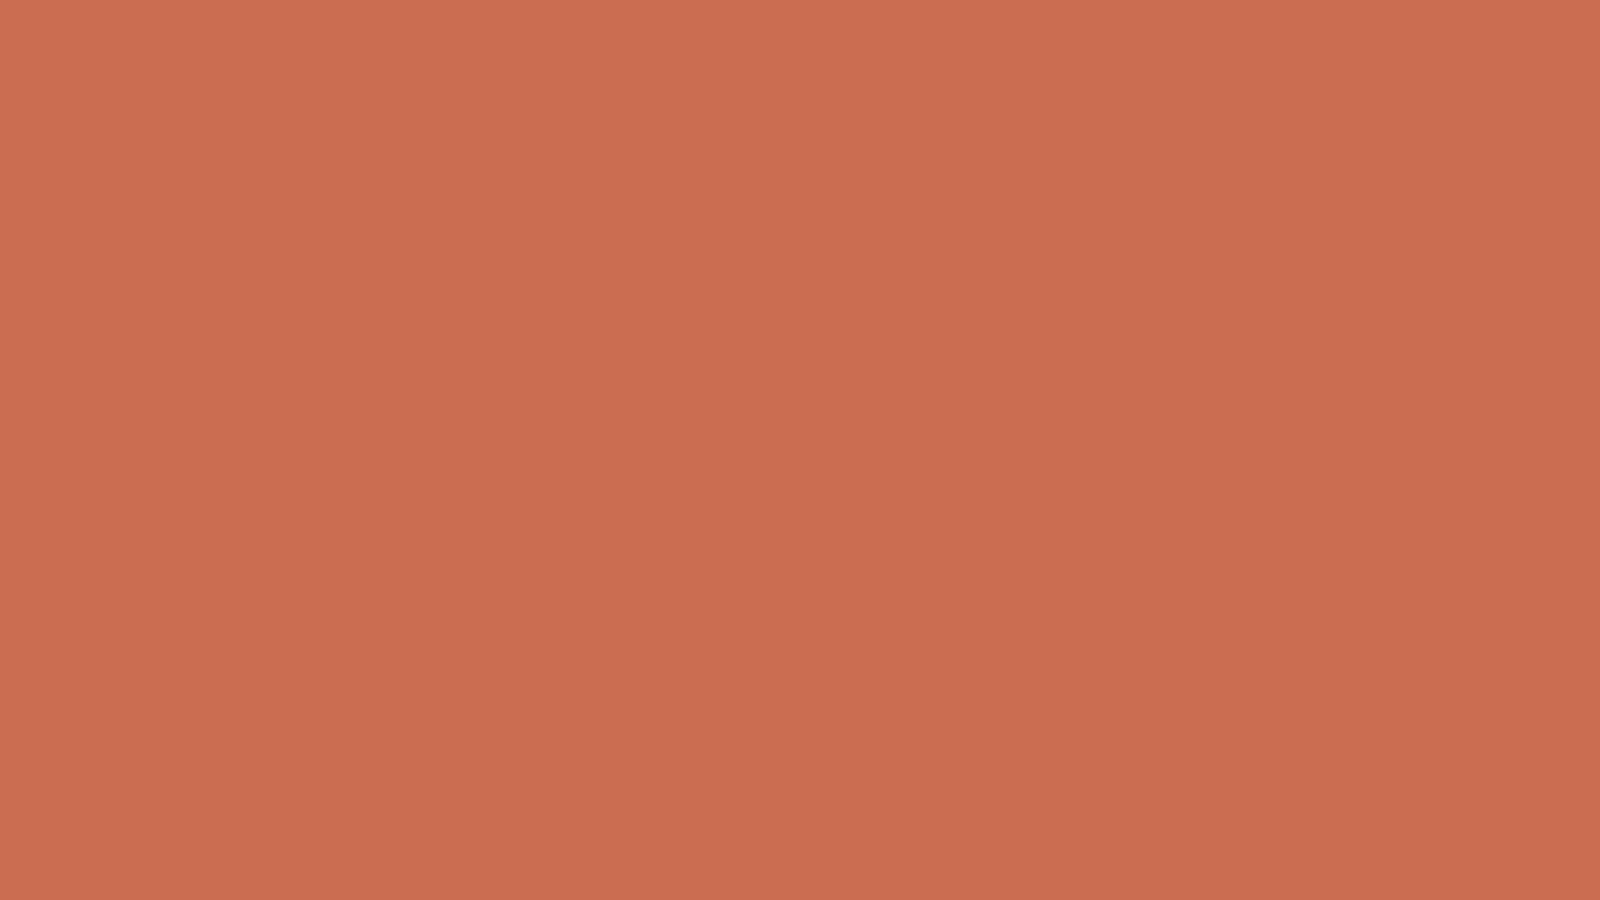 1600x900 Copper Red Solid Color Background